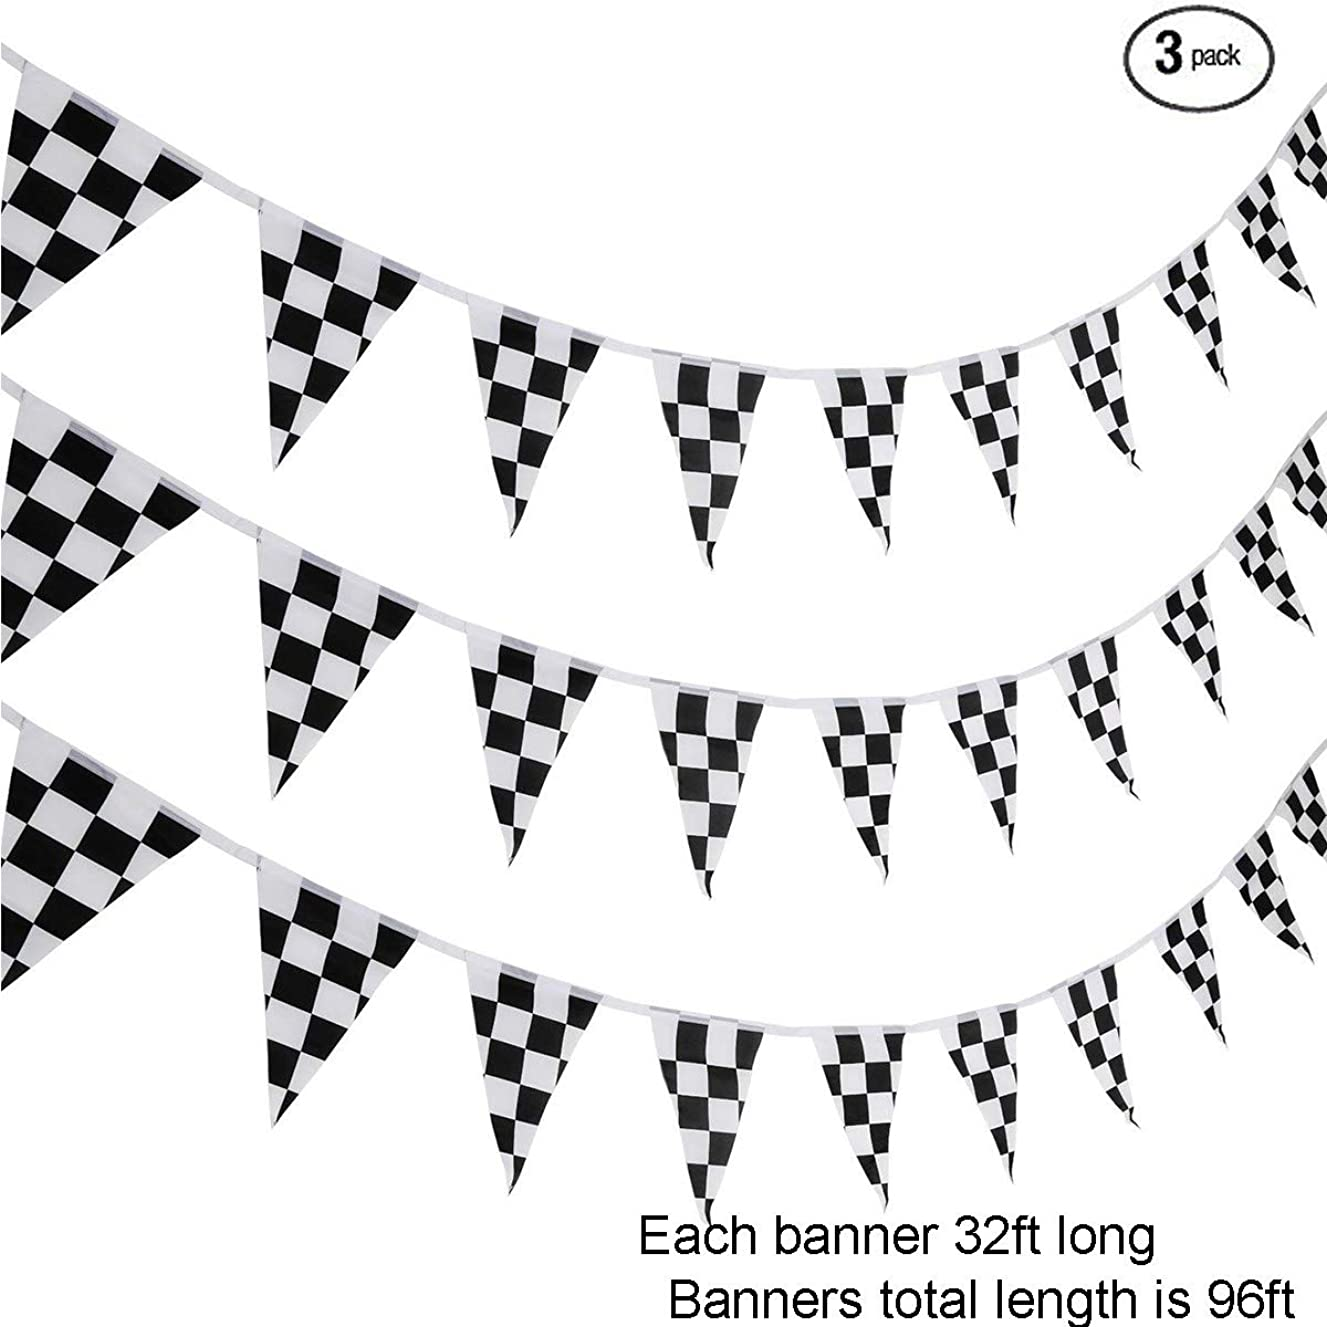 Black and White Checkered Pennant Banner Race Track Flags Decoration Addition to Decorate Boy's Monster Car Race-Themed Birthday Party(3 Pack,32ft Each Pack)